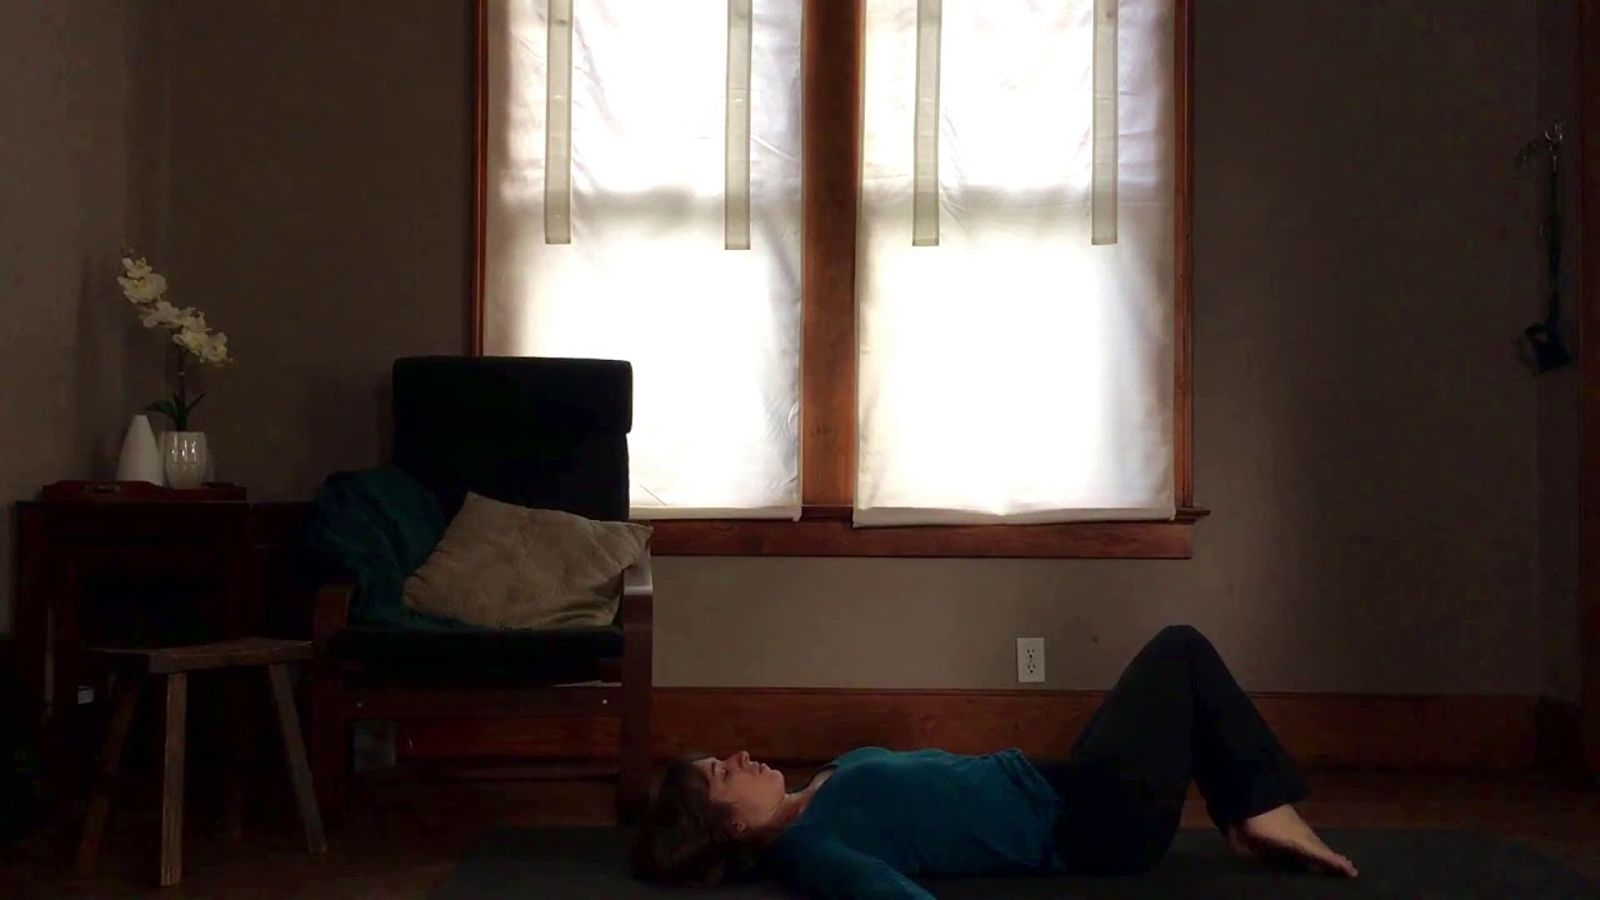 Short Evening Practice - Wind-down before bed with this easy yoga and meditation practice. Designed to quiet your mind and relax your body. You can even do this lying down in bed if you like.